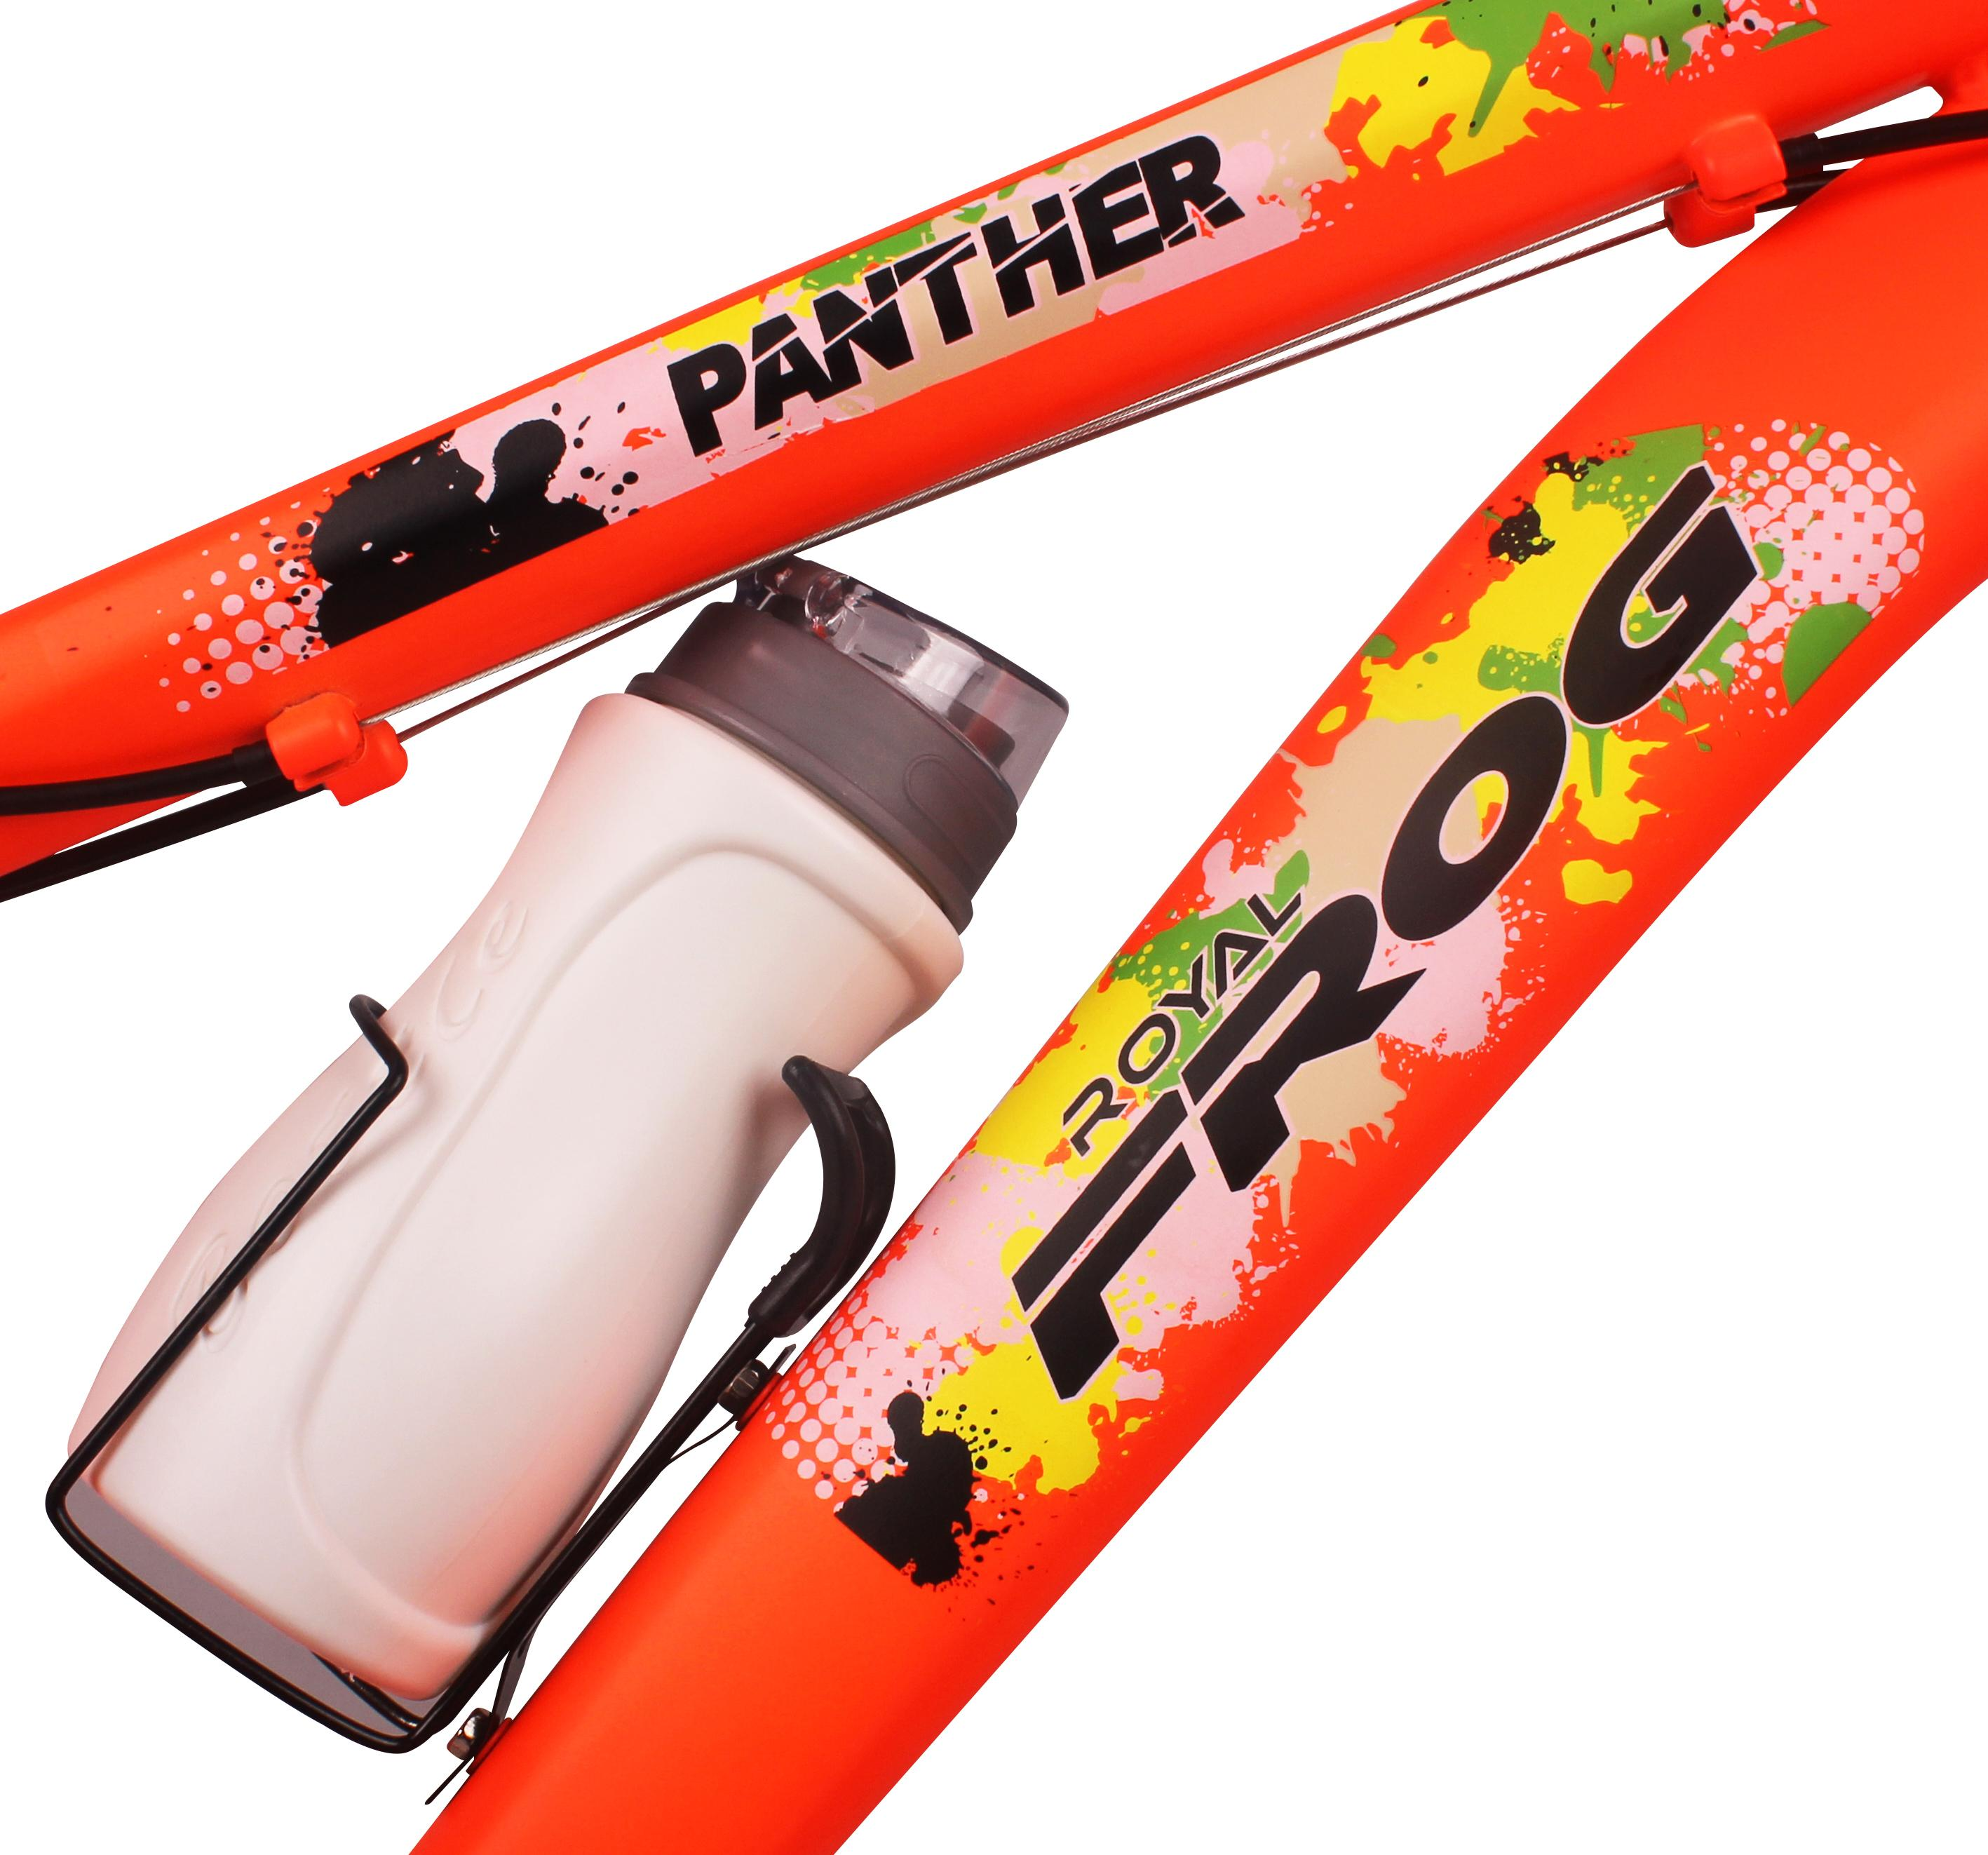 Panther 20 (Orange color) image 3